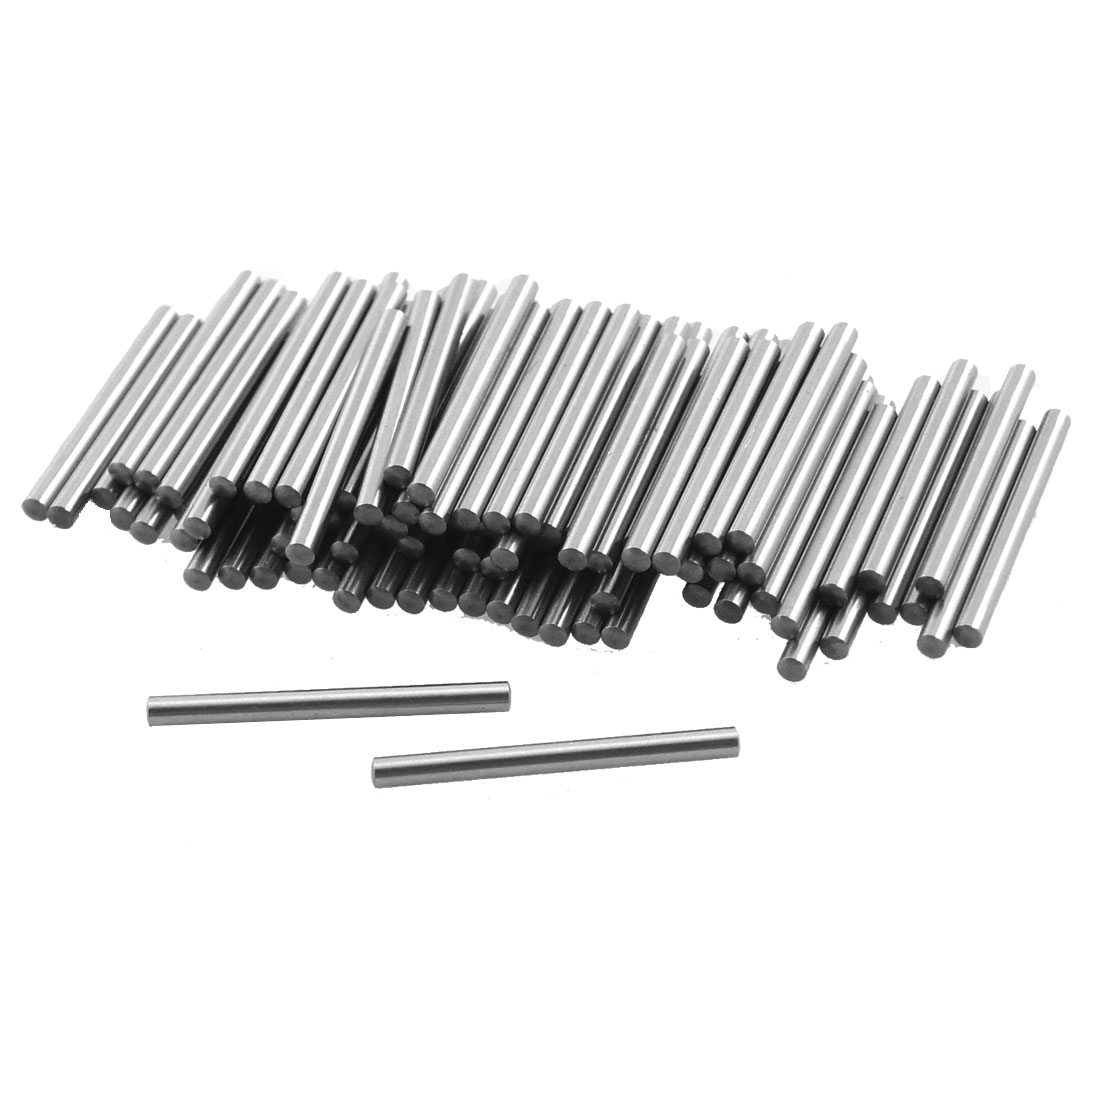 100 Pcs Stainless Steel 1.35mm x 15.8mm Cylinder Dowel Pins Fasten Elements